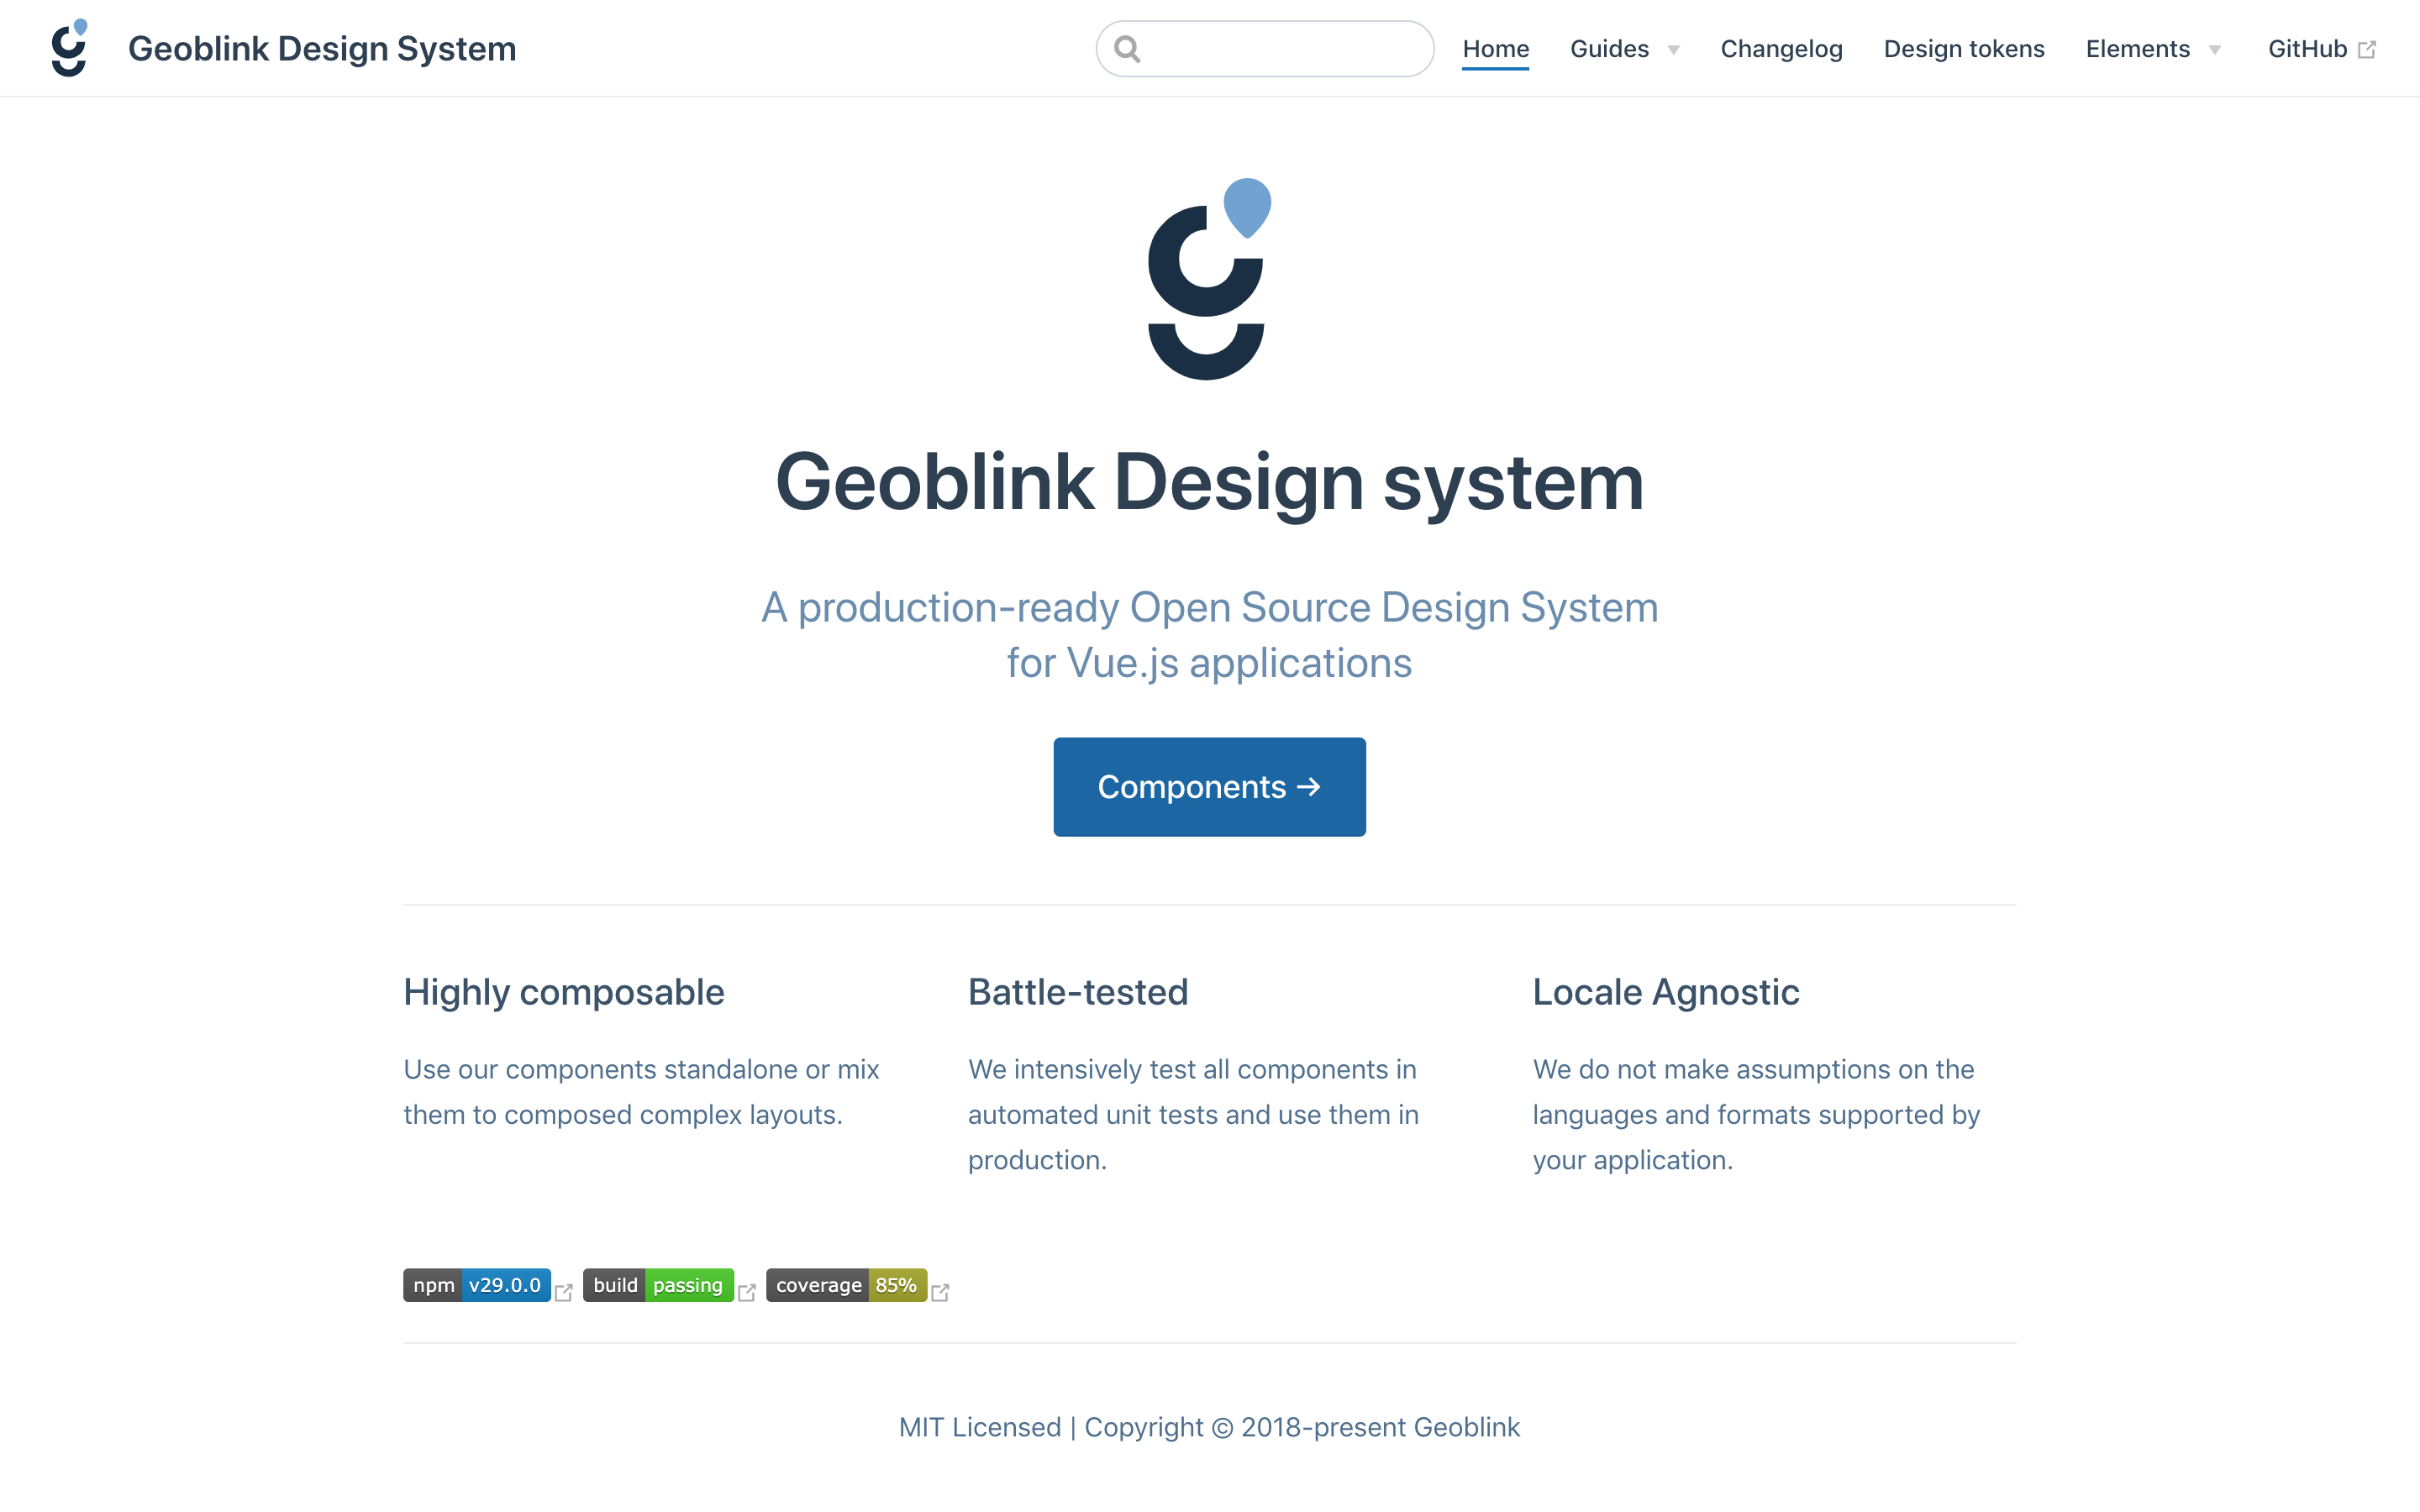 Geoblink Design System documentation home page